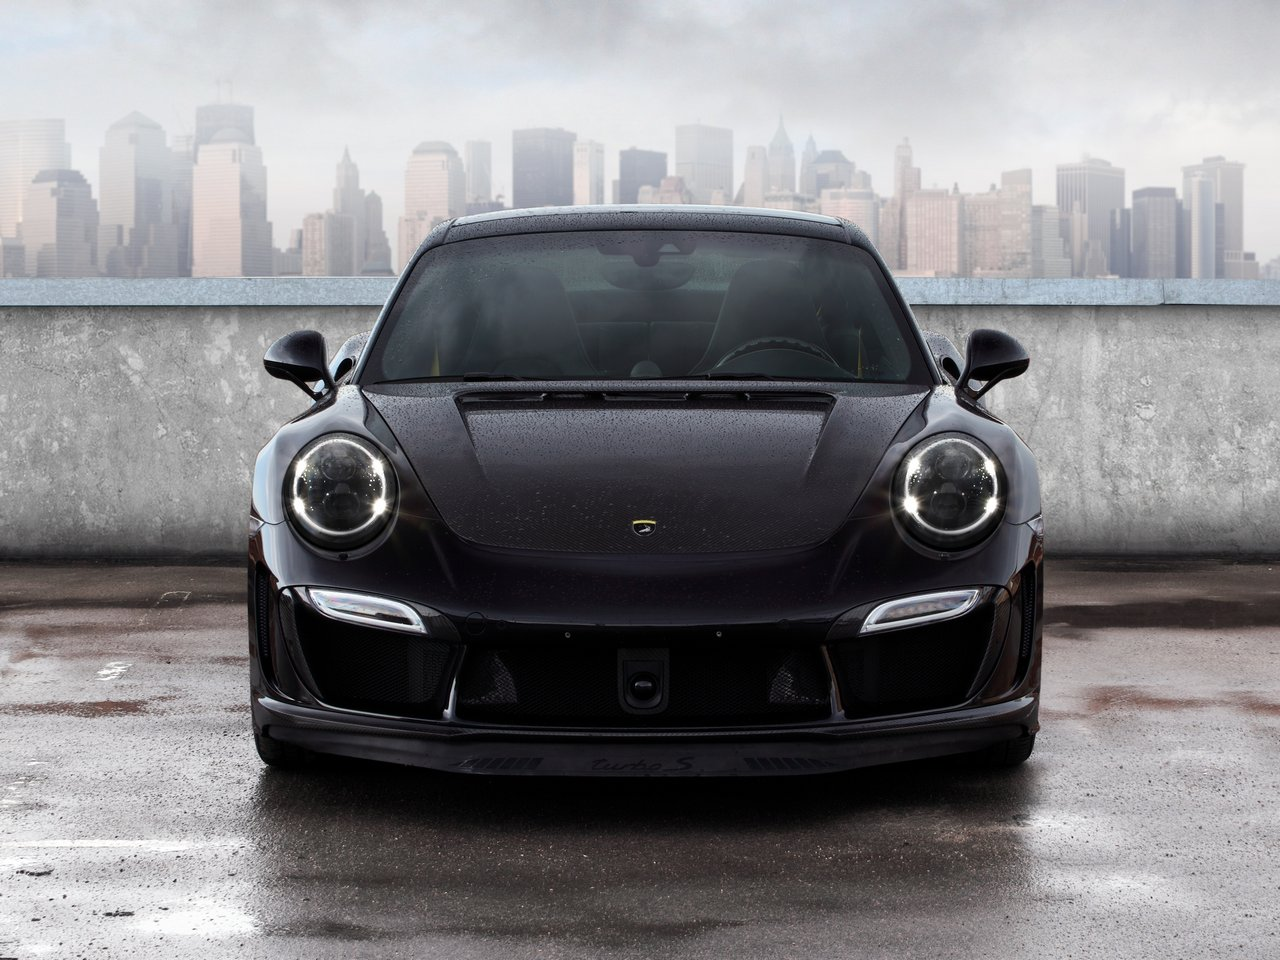 porsche-911-991-turbo-stinger-tuning-prezzo-price-0-100-15